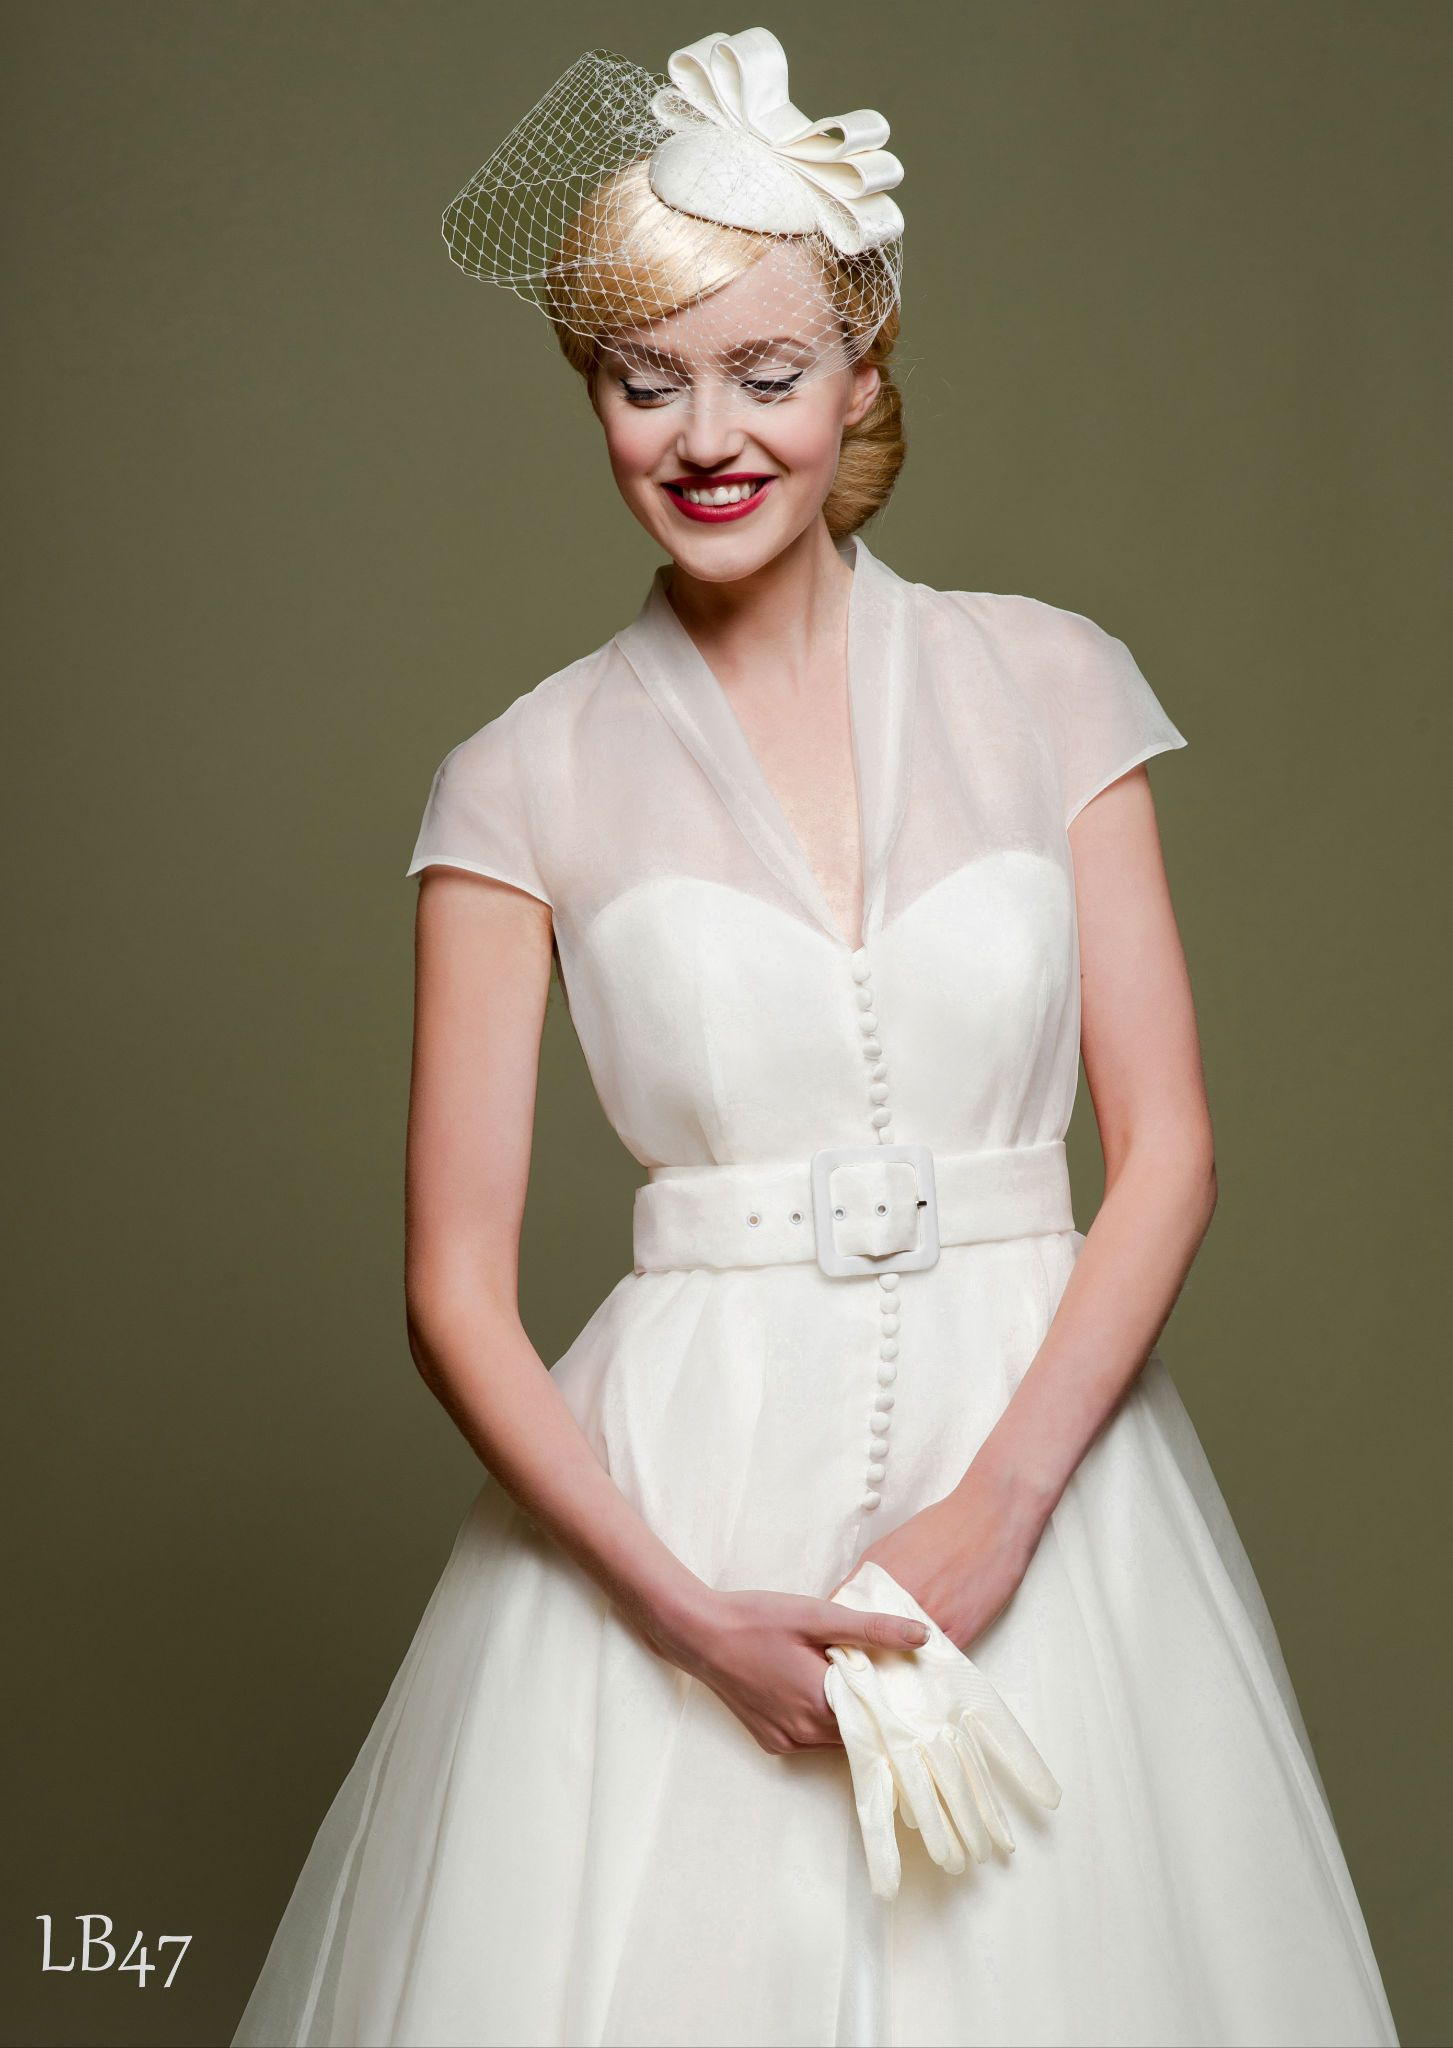 Vintage wedding dresses vintage inspired bridal gowns for Dress hats for weddings